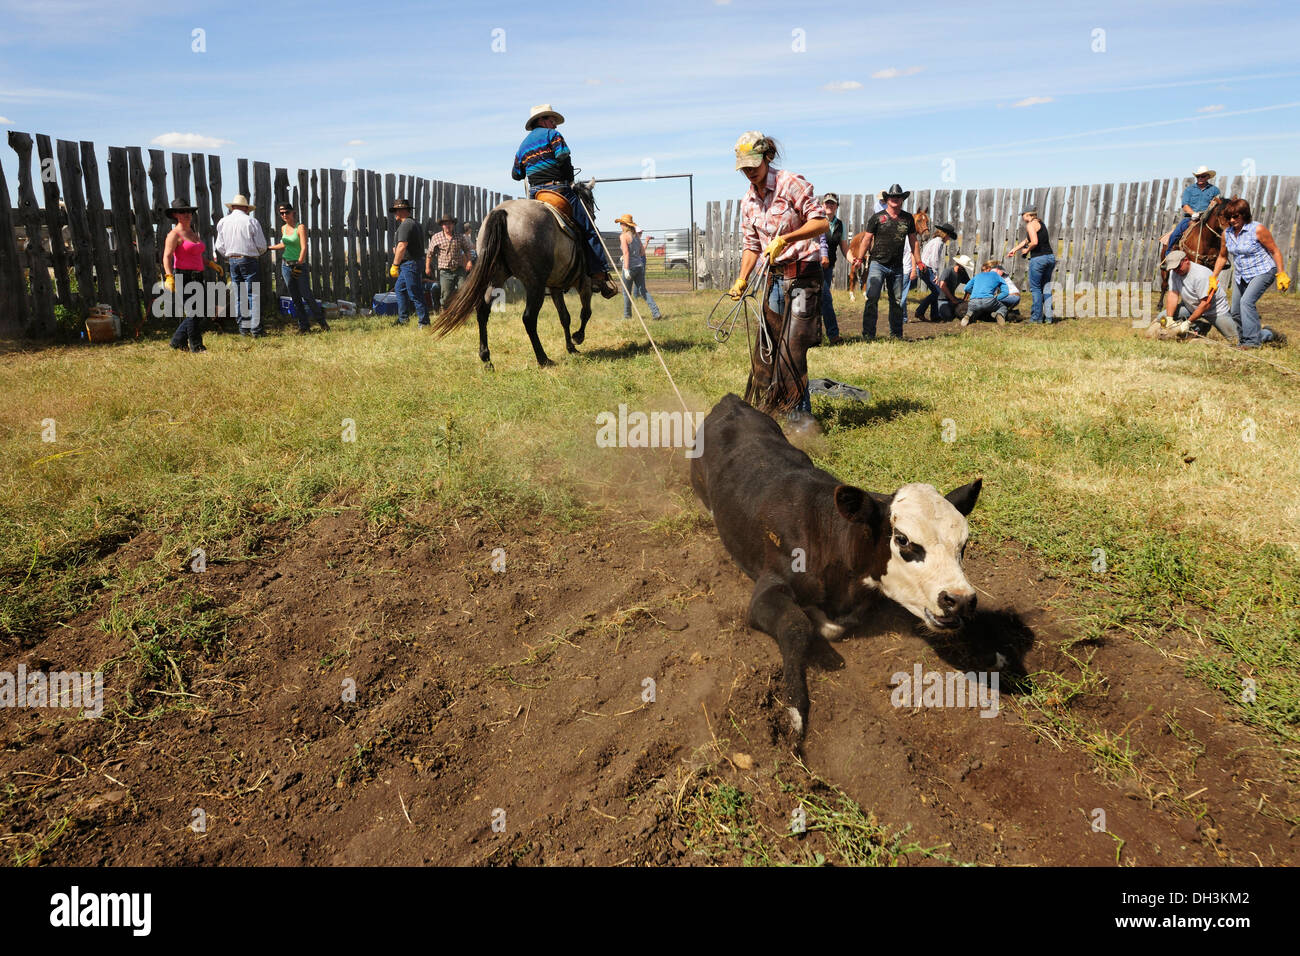 Cowboys and cowgirls bringing a cattle tied with a lasso to the ground to brand it, Cypress Hills, Saskatchewan Province, Canada - Stock Image